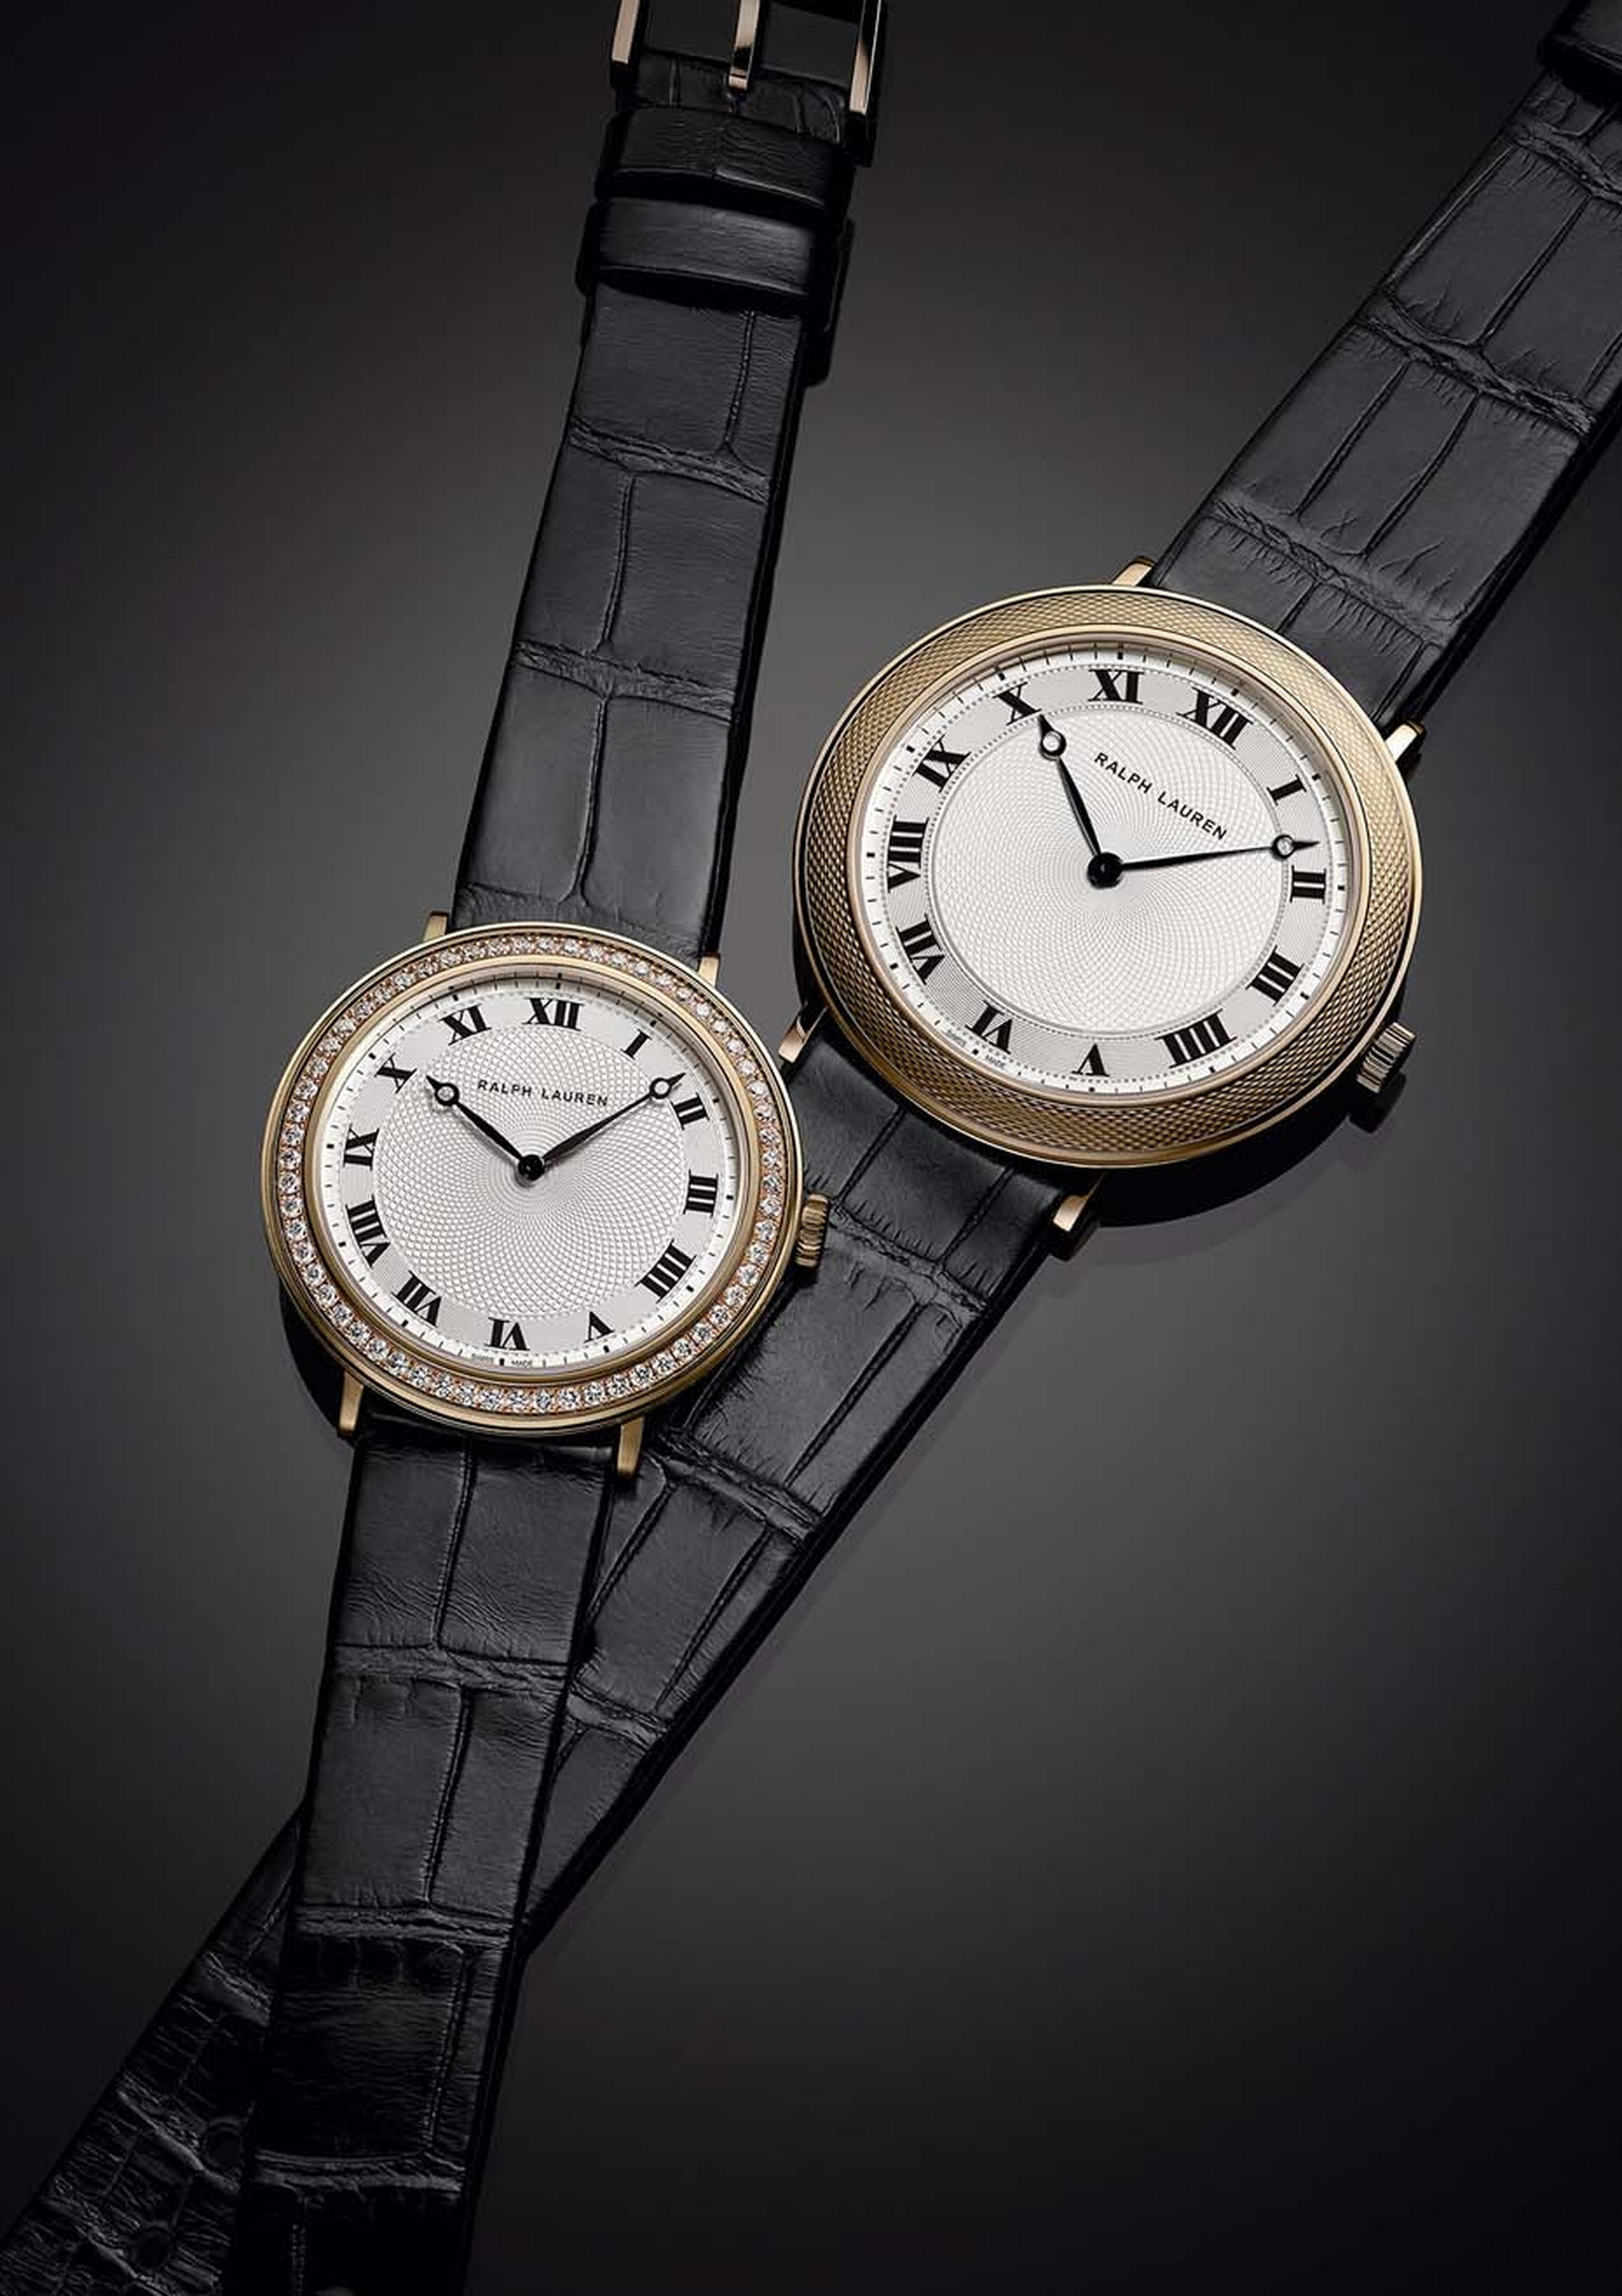 A new addition for 2014 in Ralph Lauren's Slim Classique collection is a smaller model designed especially for women